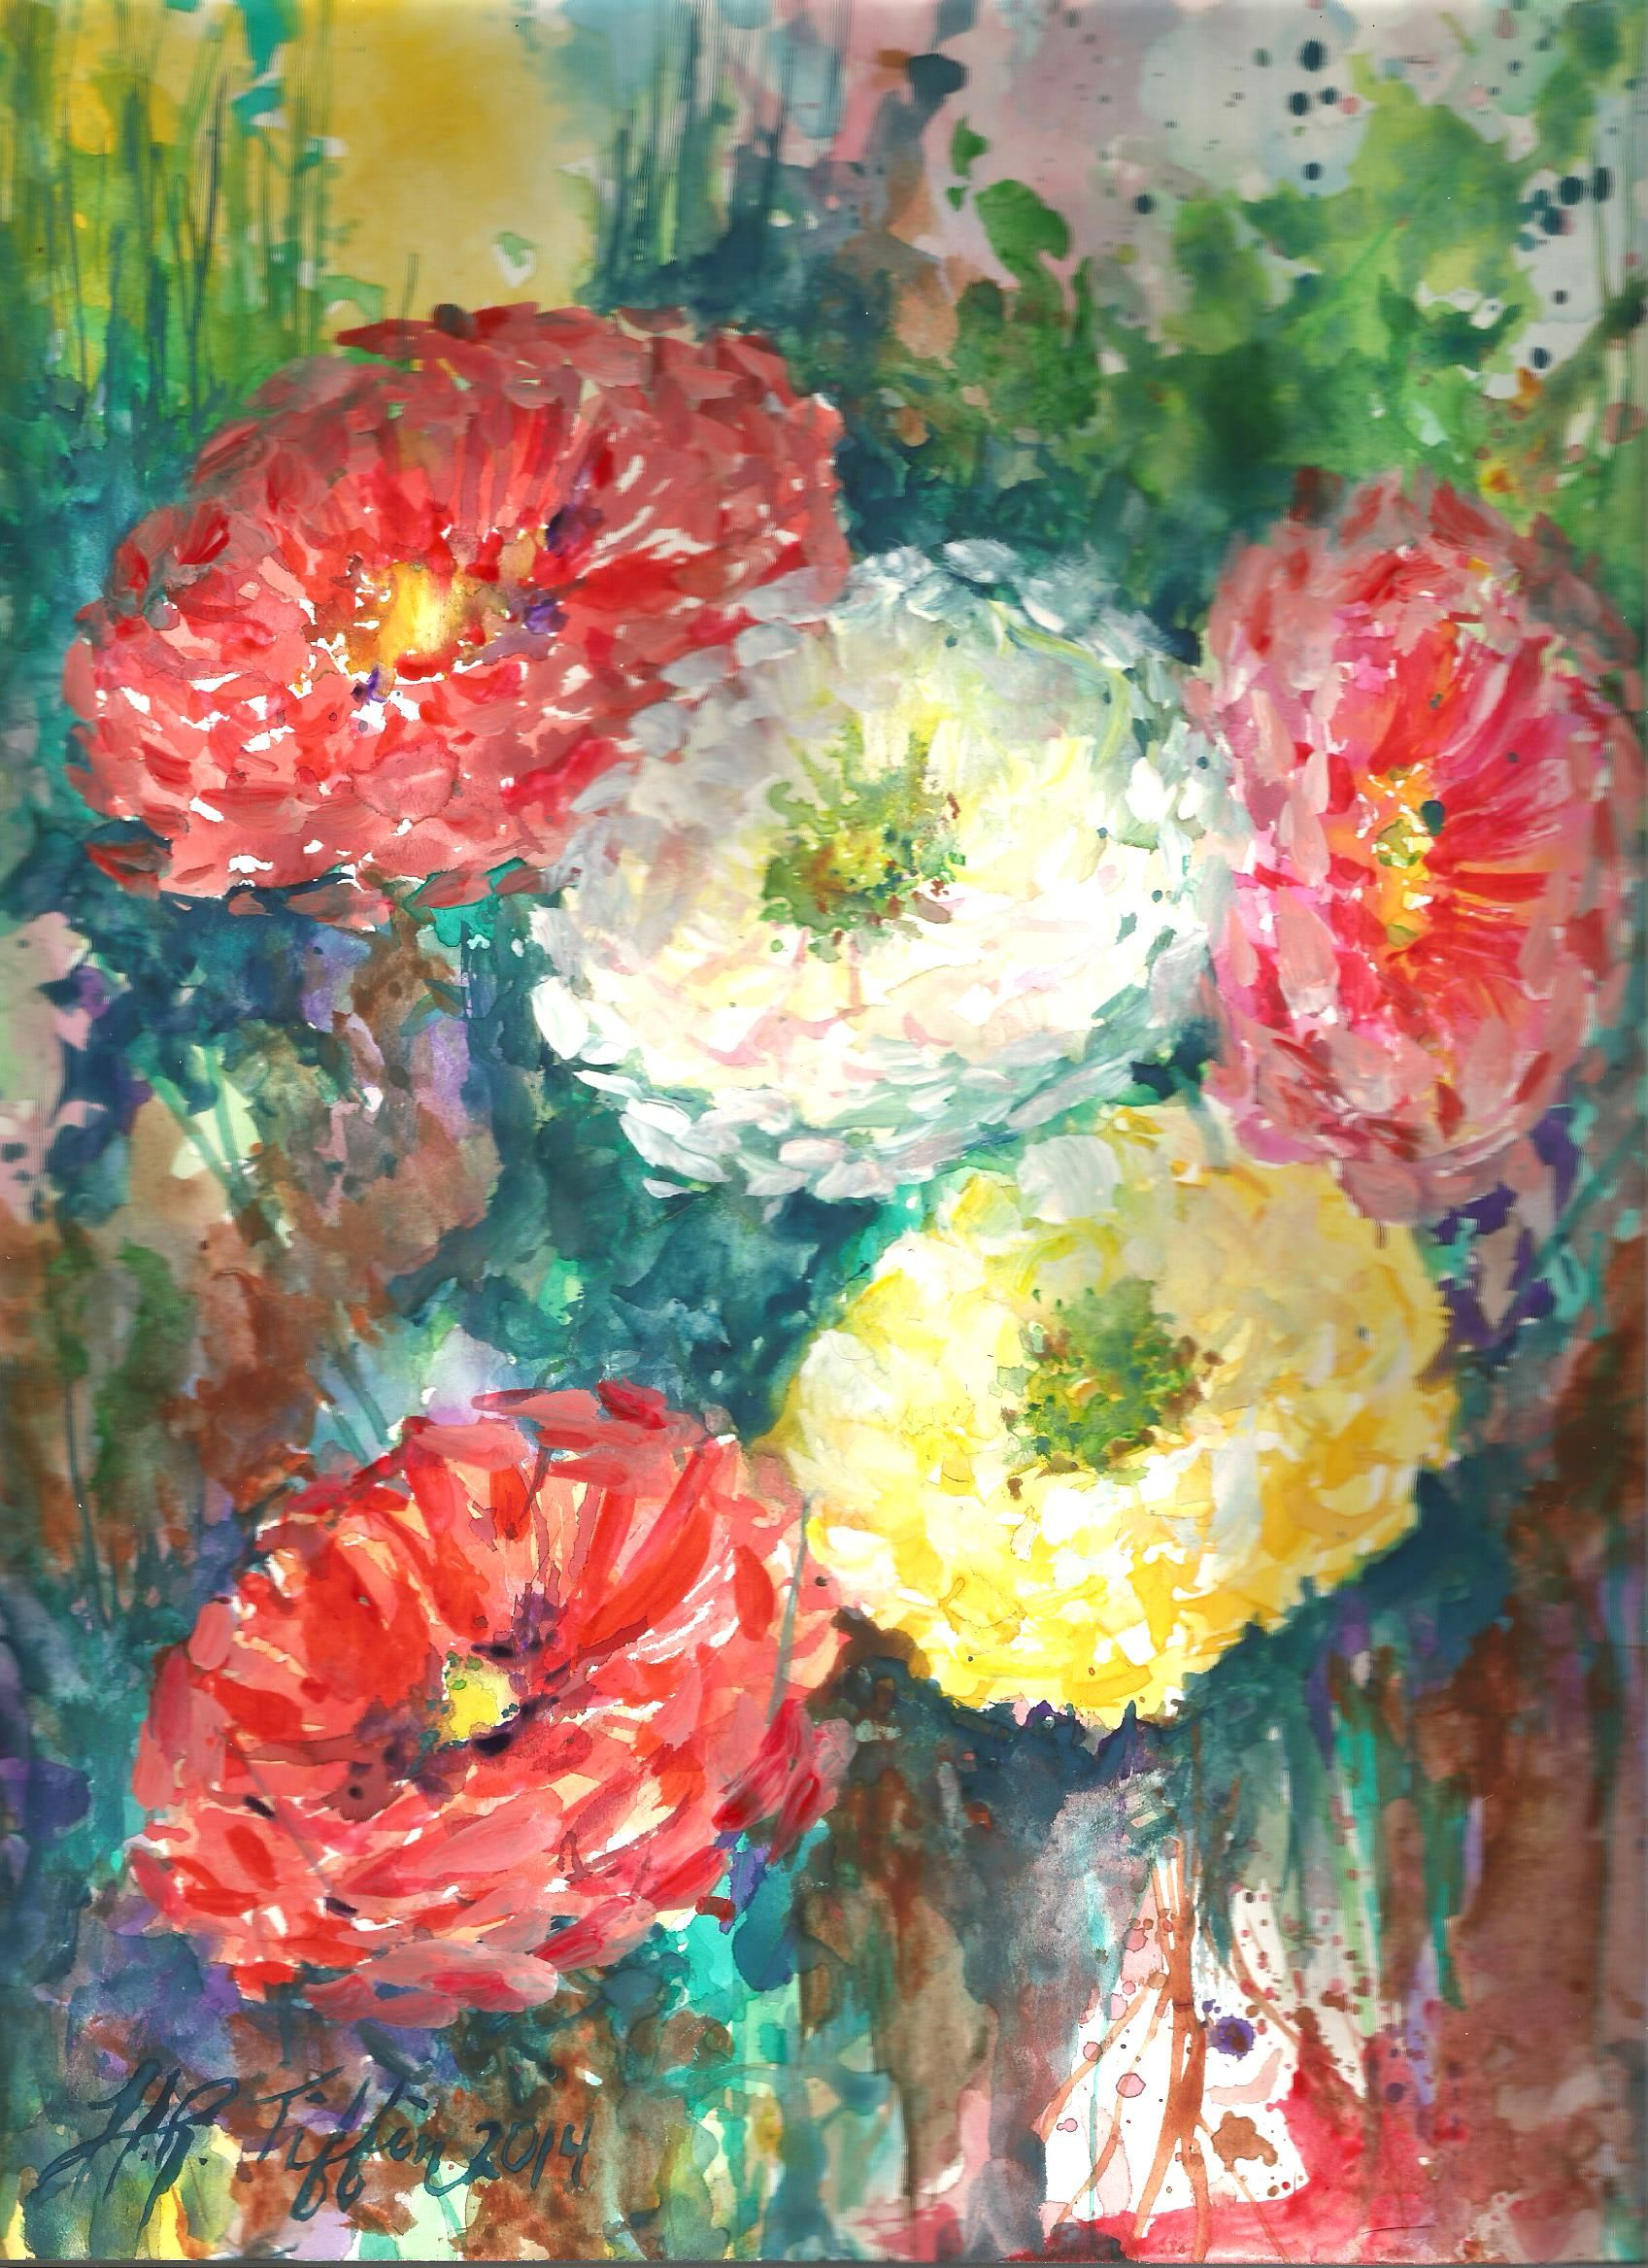 Original watercolor art for sale - This Is A Original Watercolor By Artist Hannah Tiffin Though This Image Has Been Mass Produced This Is The Original And It Is For Sale